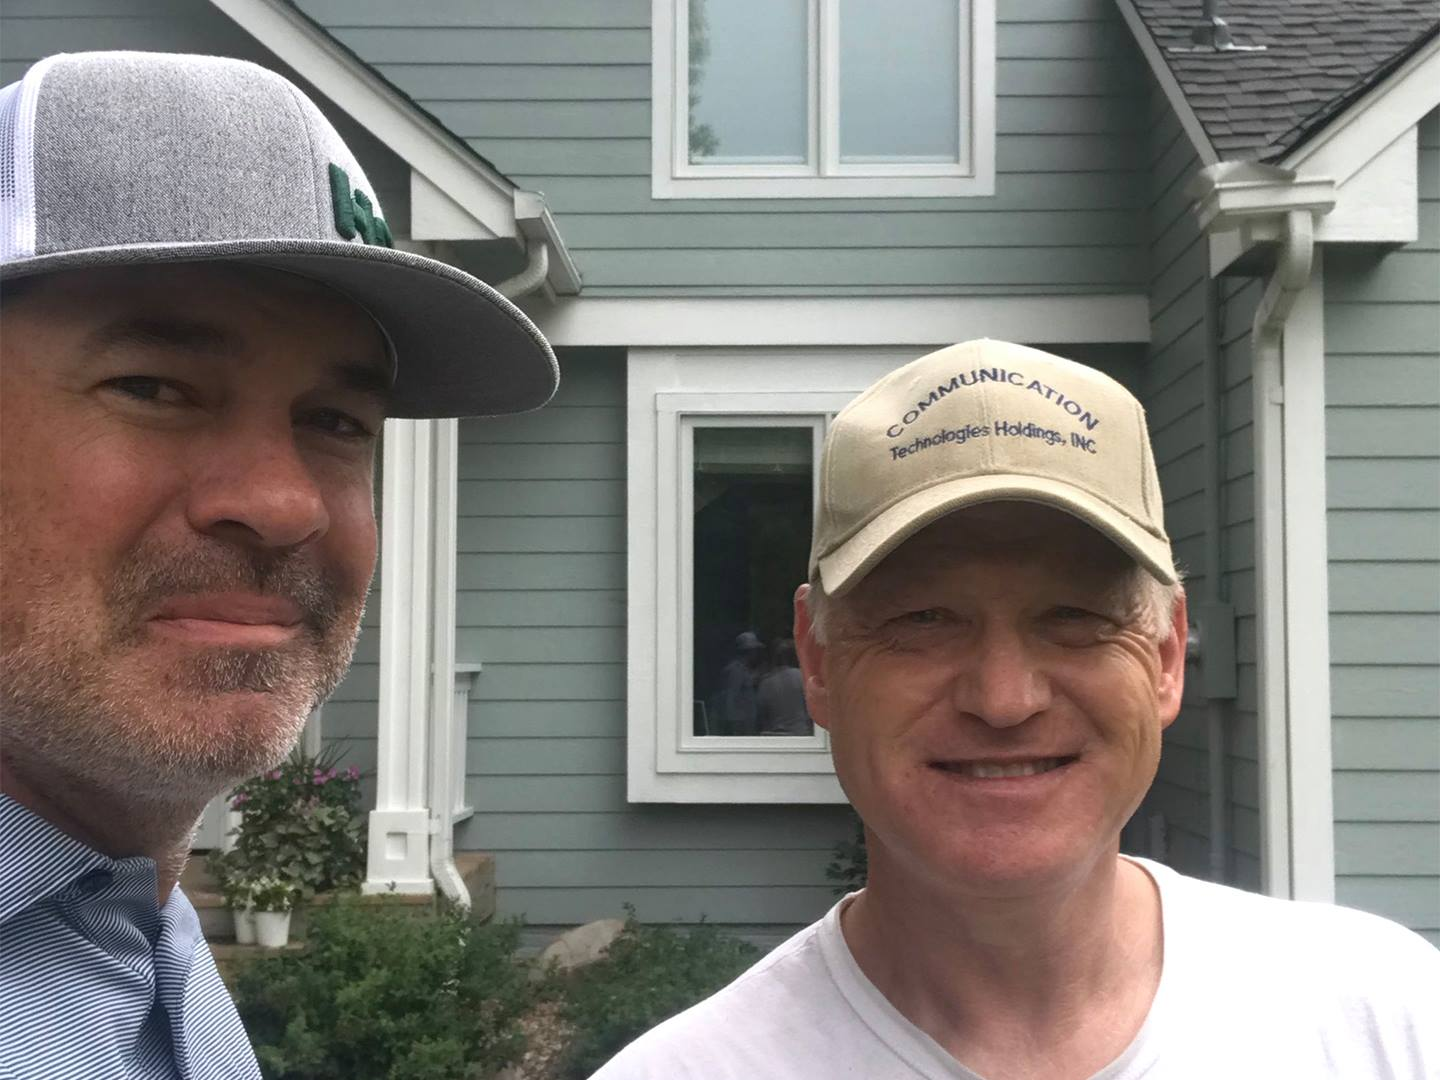 Pictured is Rocky, one of our Home Solution Experts stopping by to check in with Mike and the installation process of his new GAF® roofing and LeafGuard® gutter systems!